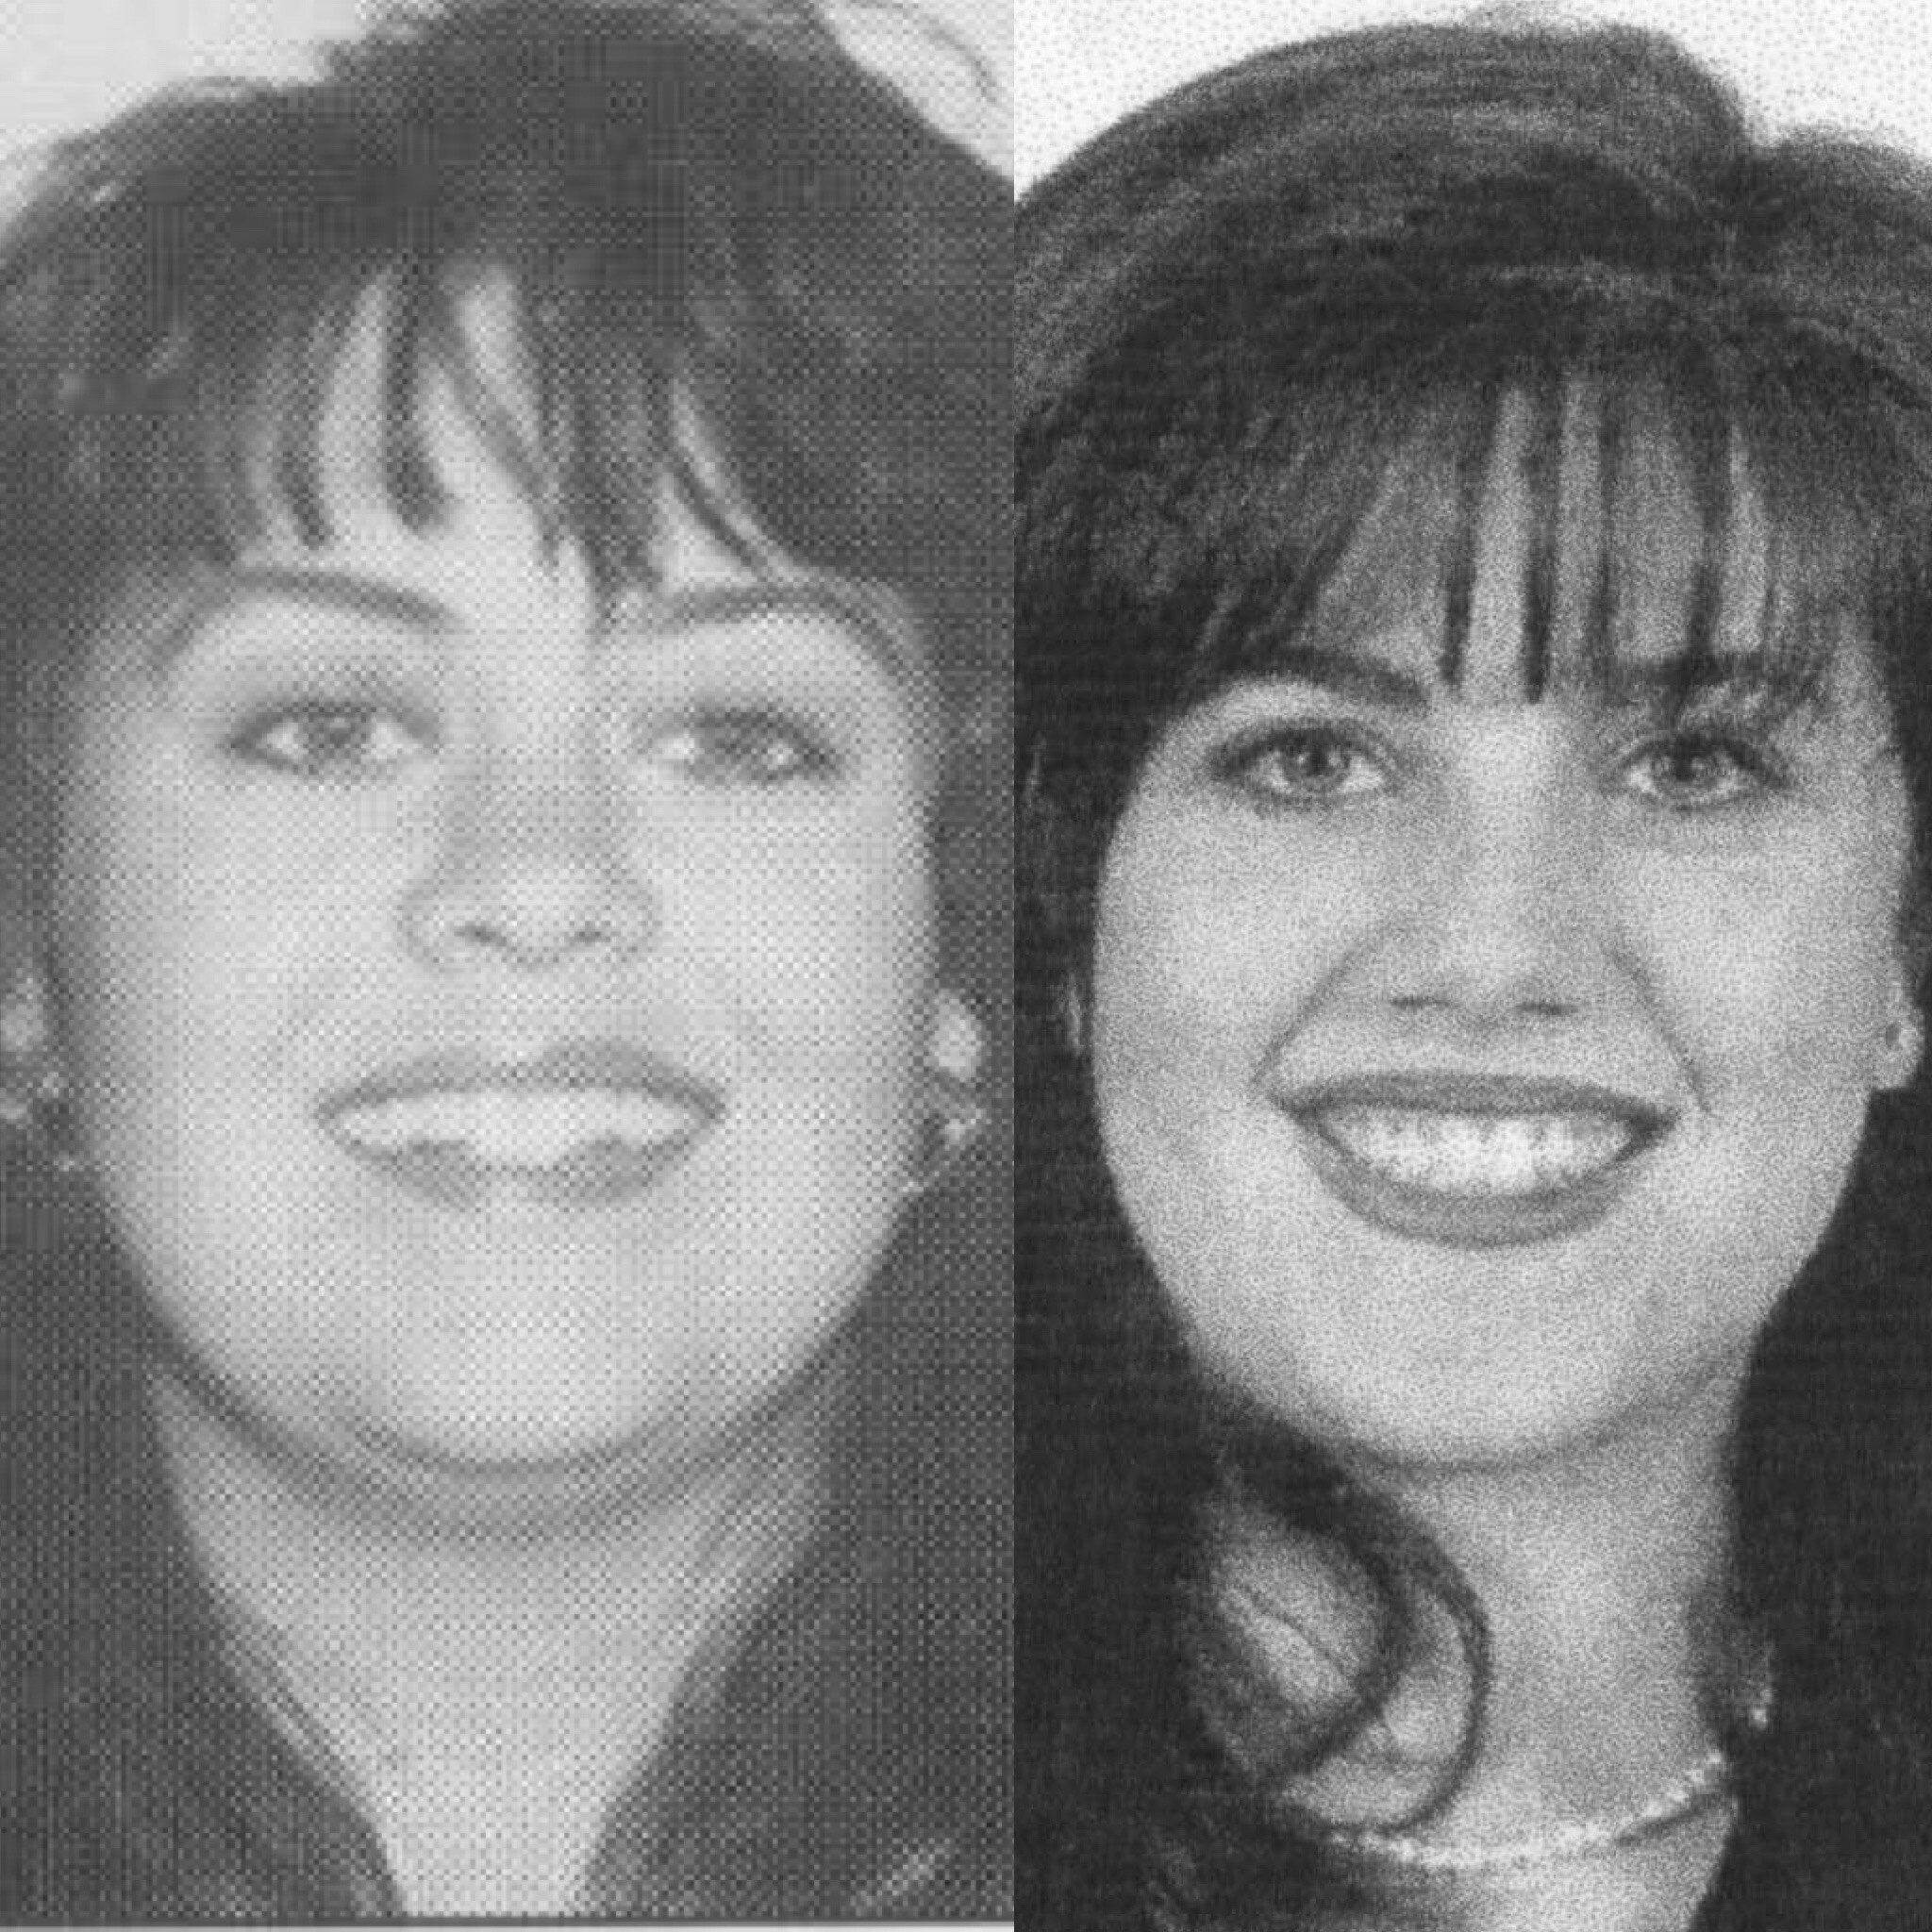 Left: a 1996 passport photo of me. Right: Monica Lewinsky (Source unknown. I attempted to find a source but this image appears so much on the internet still today I couldn't find the original.)